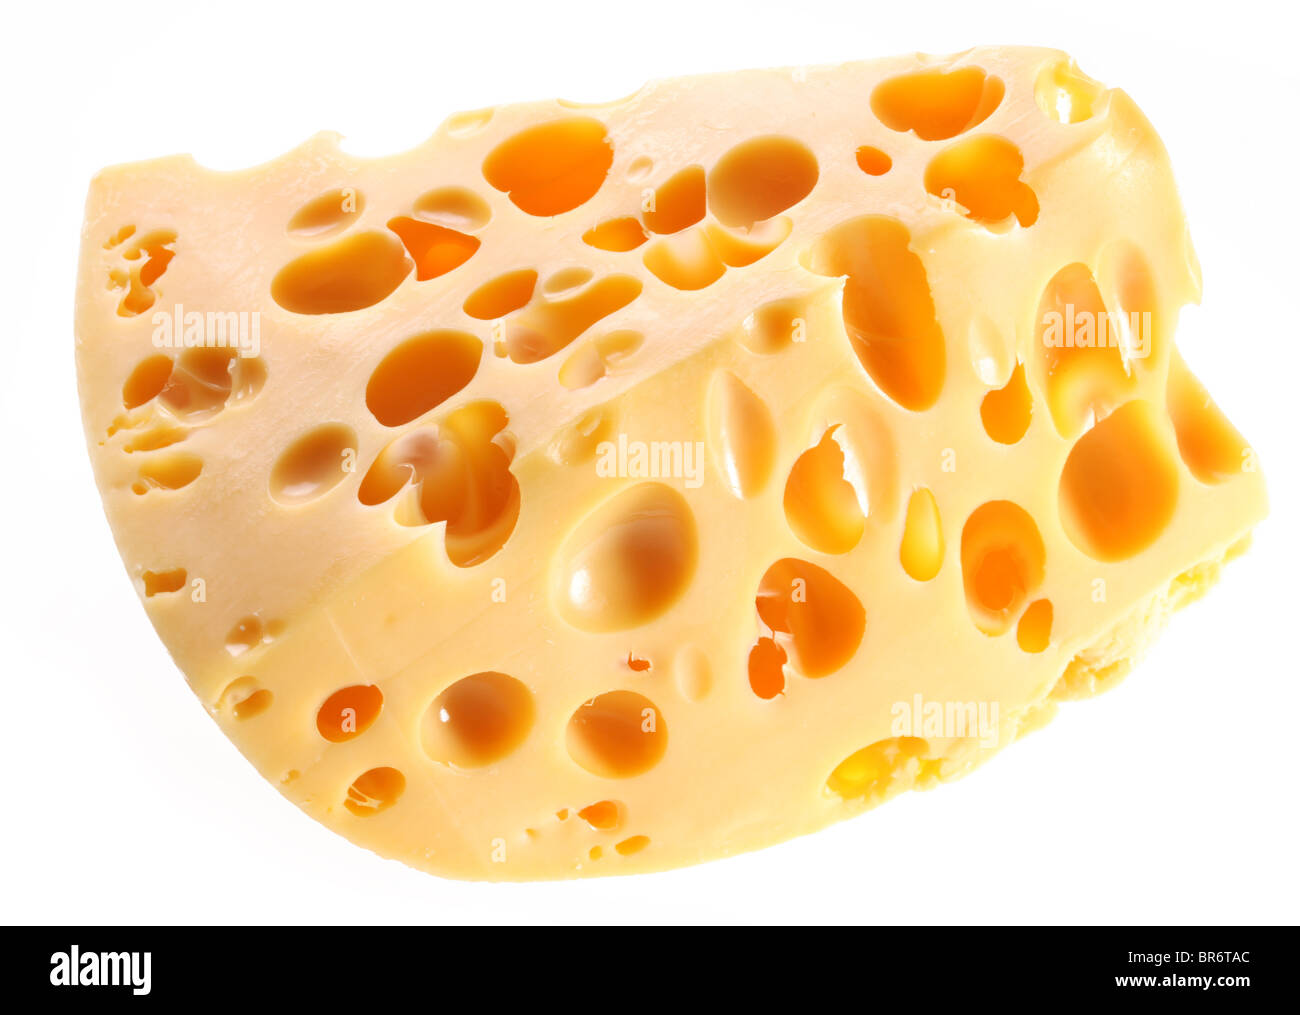 Piece of Swiss cheese on a white background. - Stock Image